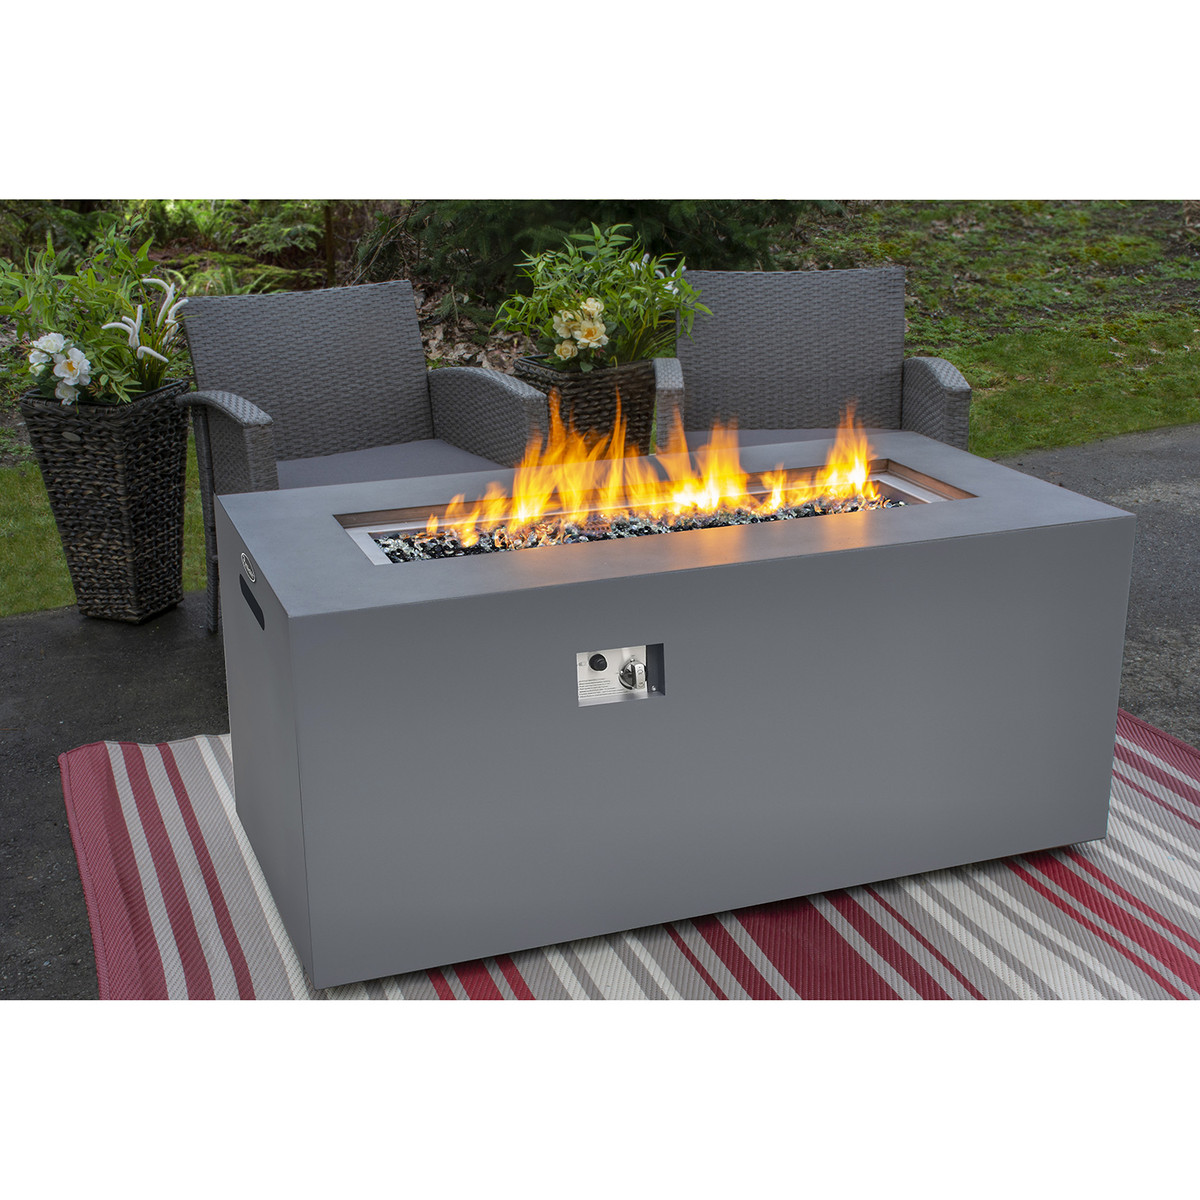 PARAMOUNT CONCRETE LOOK ALUMINUM FIRE TABLE, TALL RECTANGLE